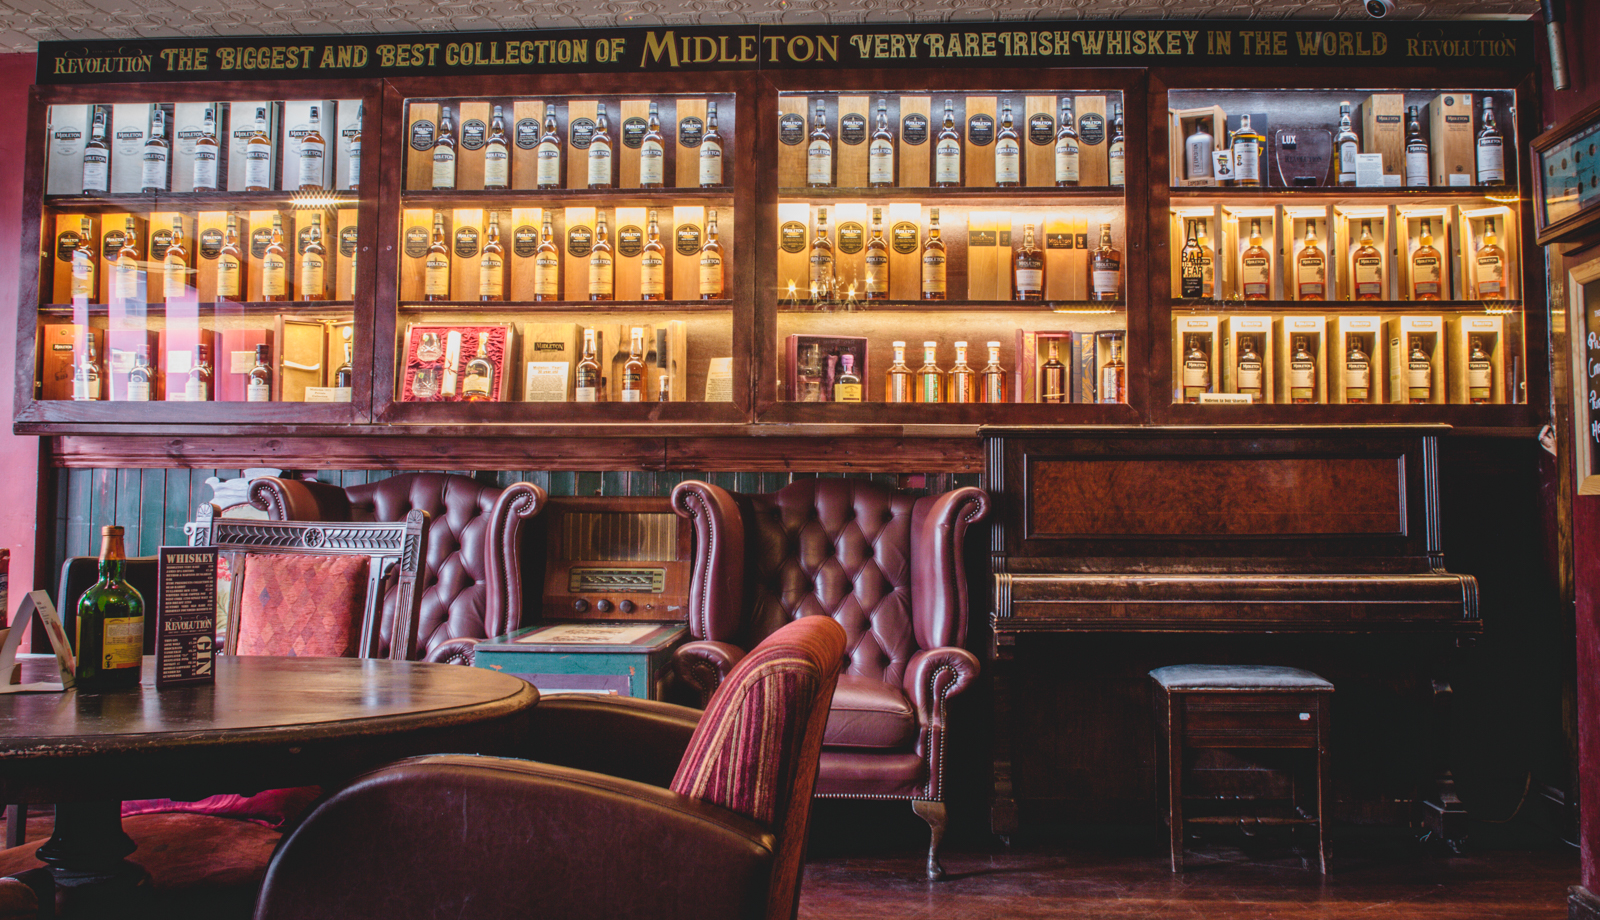 The Midleton Whiskey Cabinet at Revolution Craft Bar, Waterford - The Best Collection of Midleton Very Rare Whiskey in the World on Display and for sale